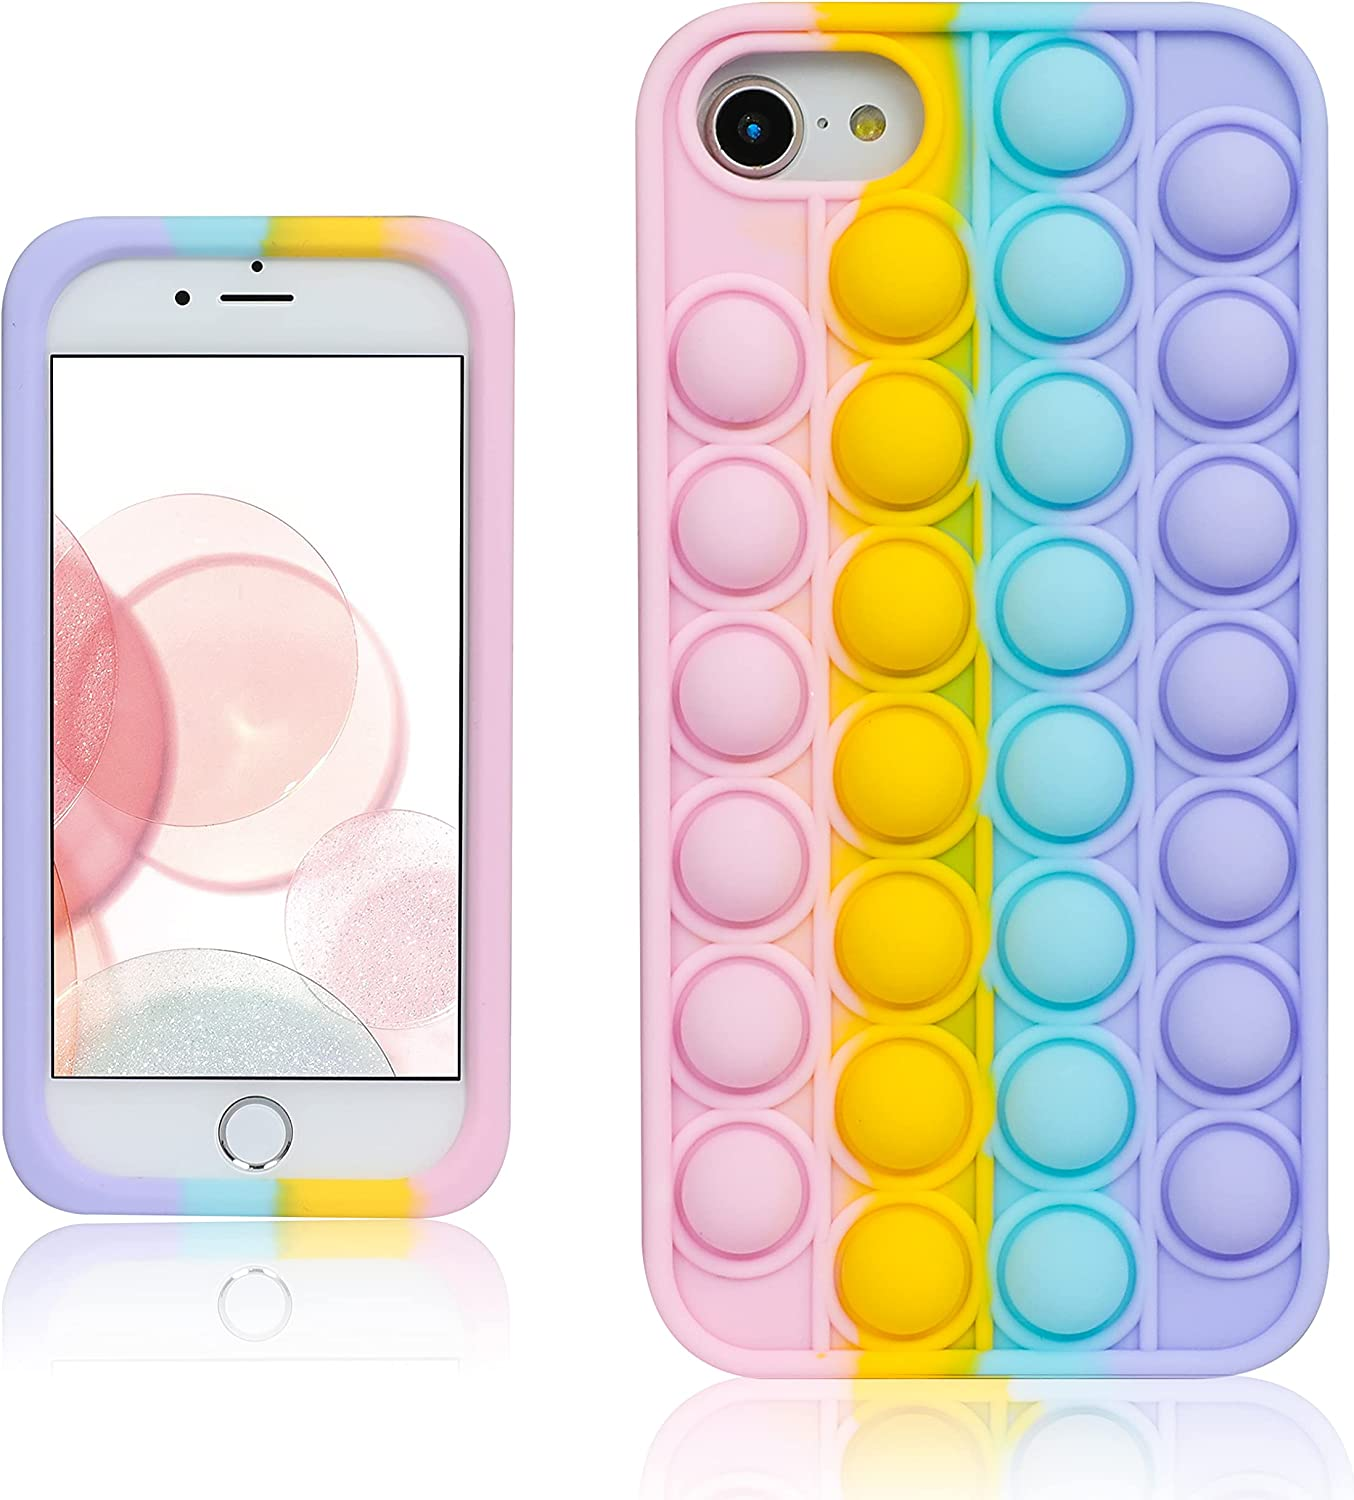 oqpa for iPhone 7/8/SE 2020/6/6S Case Cartoon Kawaii Funny Cute Fun Silicone Design Cover for Girls Kids Boys Teen, Fashion Cool Unique Fidget Color Bubble Cases (for iPhone 7/8/SE 2020/6/6S 4.7